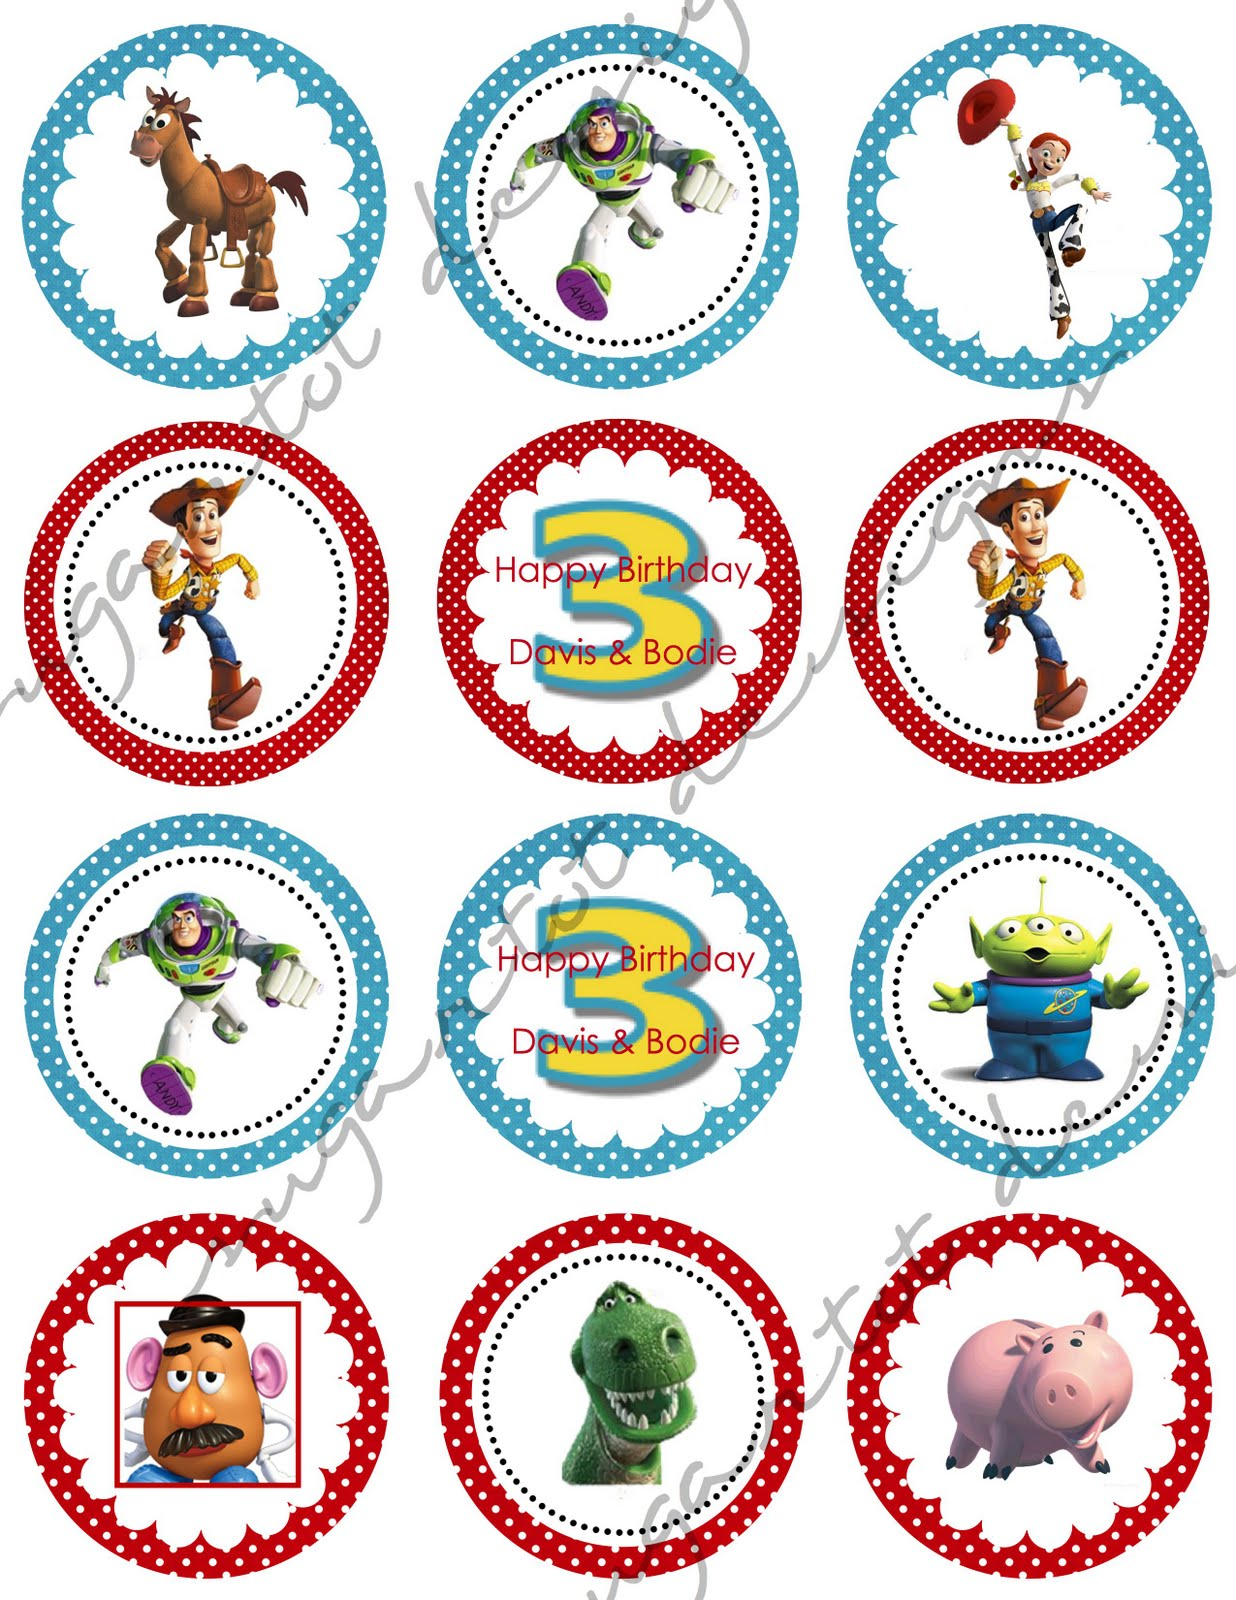 Sugartotdesigns Toy Story 3 Party Invitations Amp Cupcake